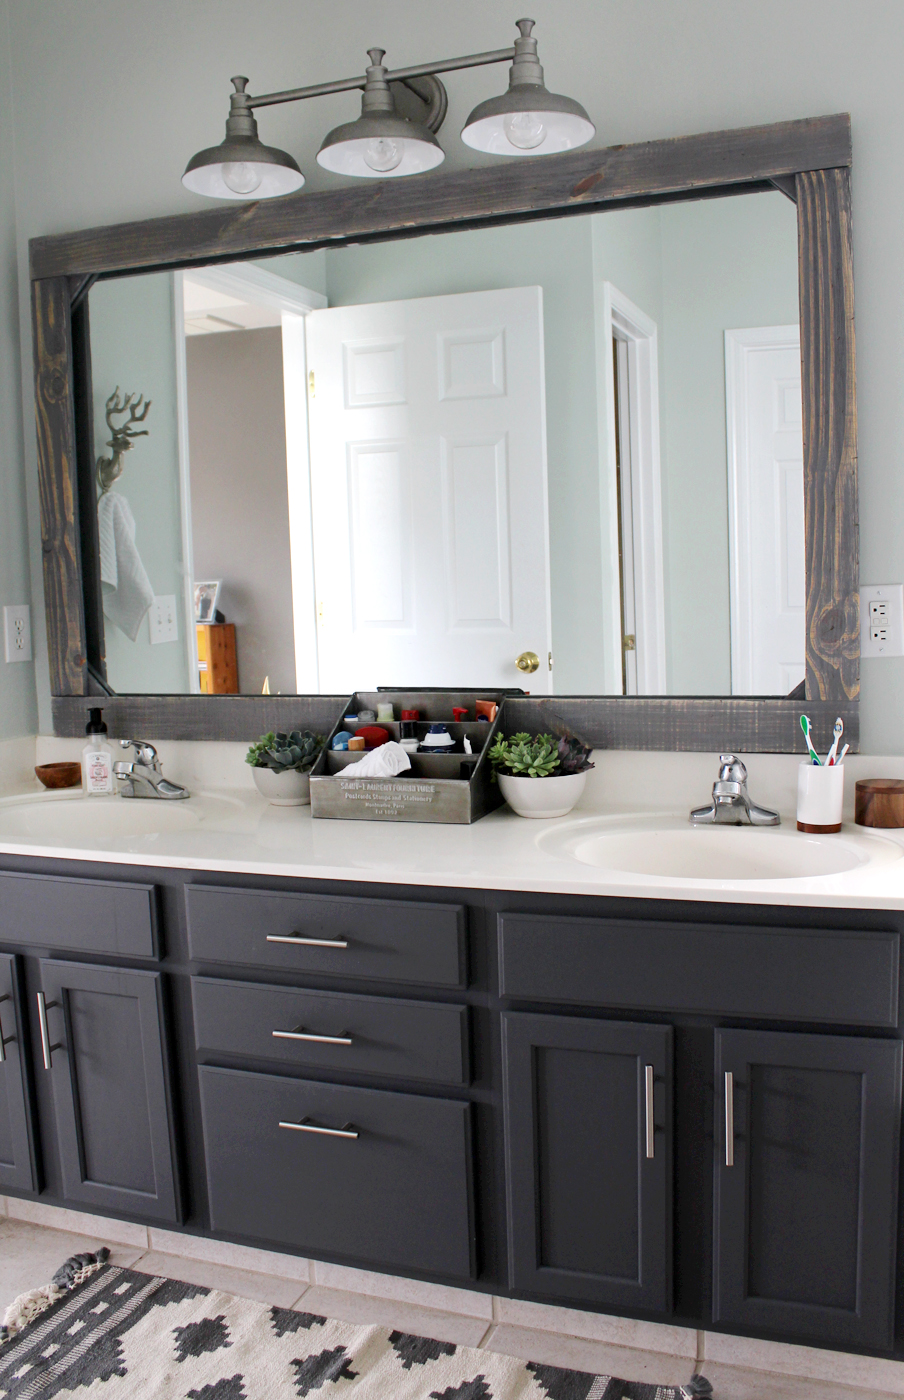 How To Put Frame Around Bathroom Mirror